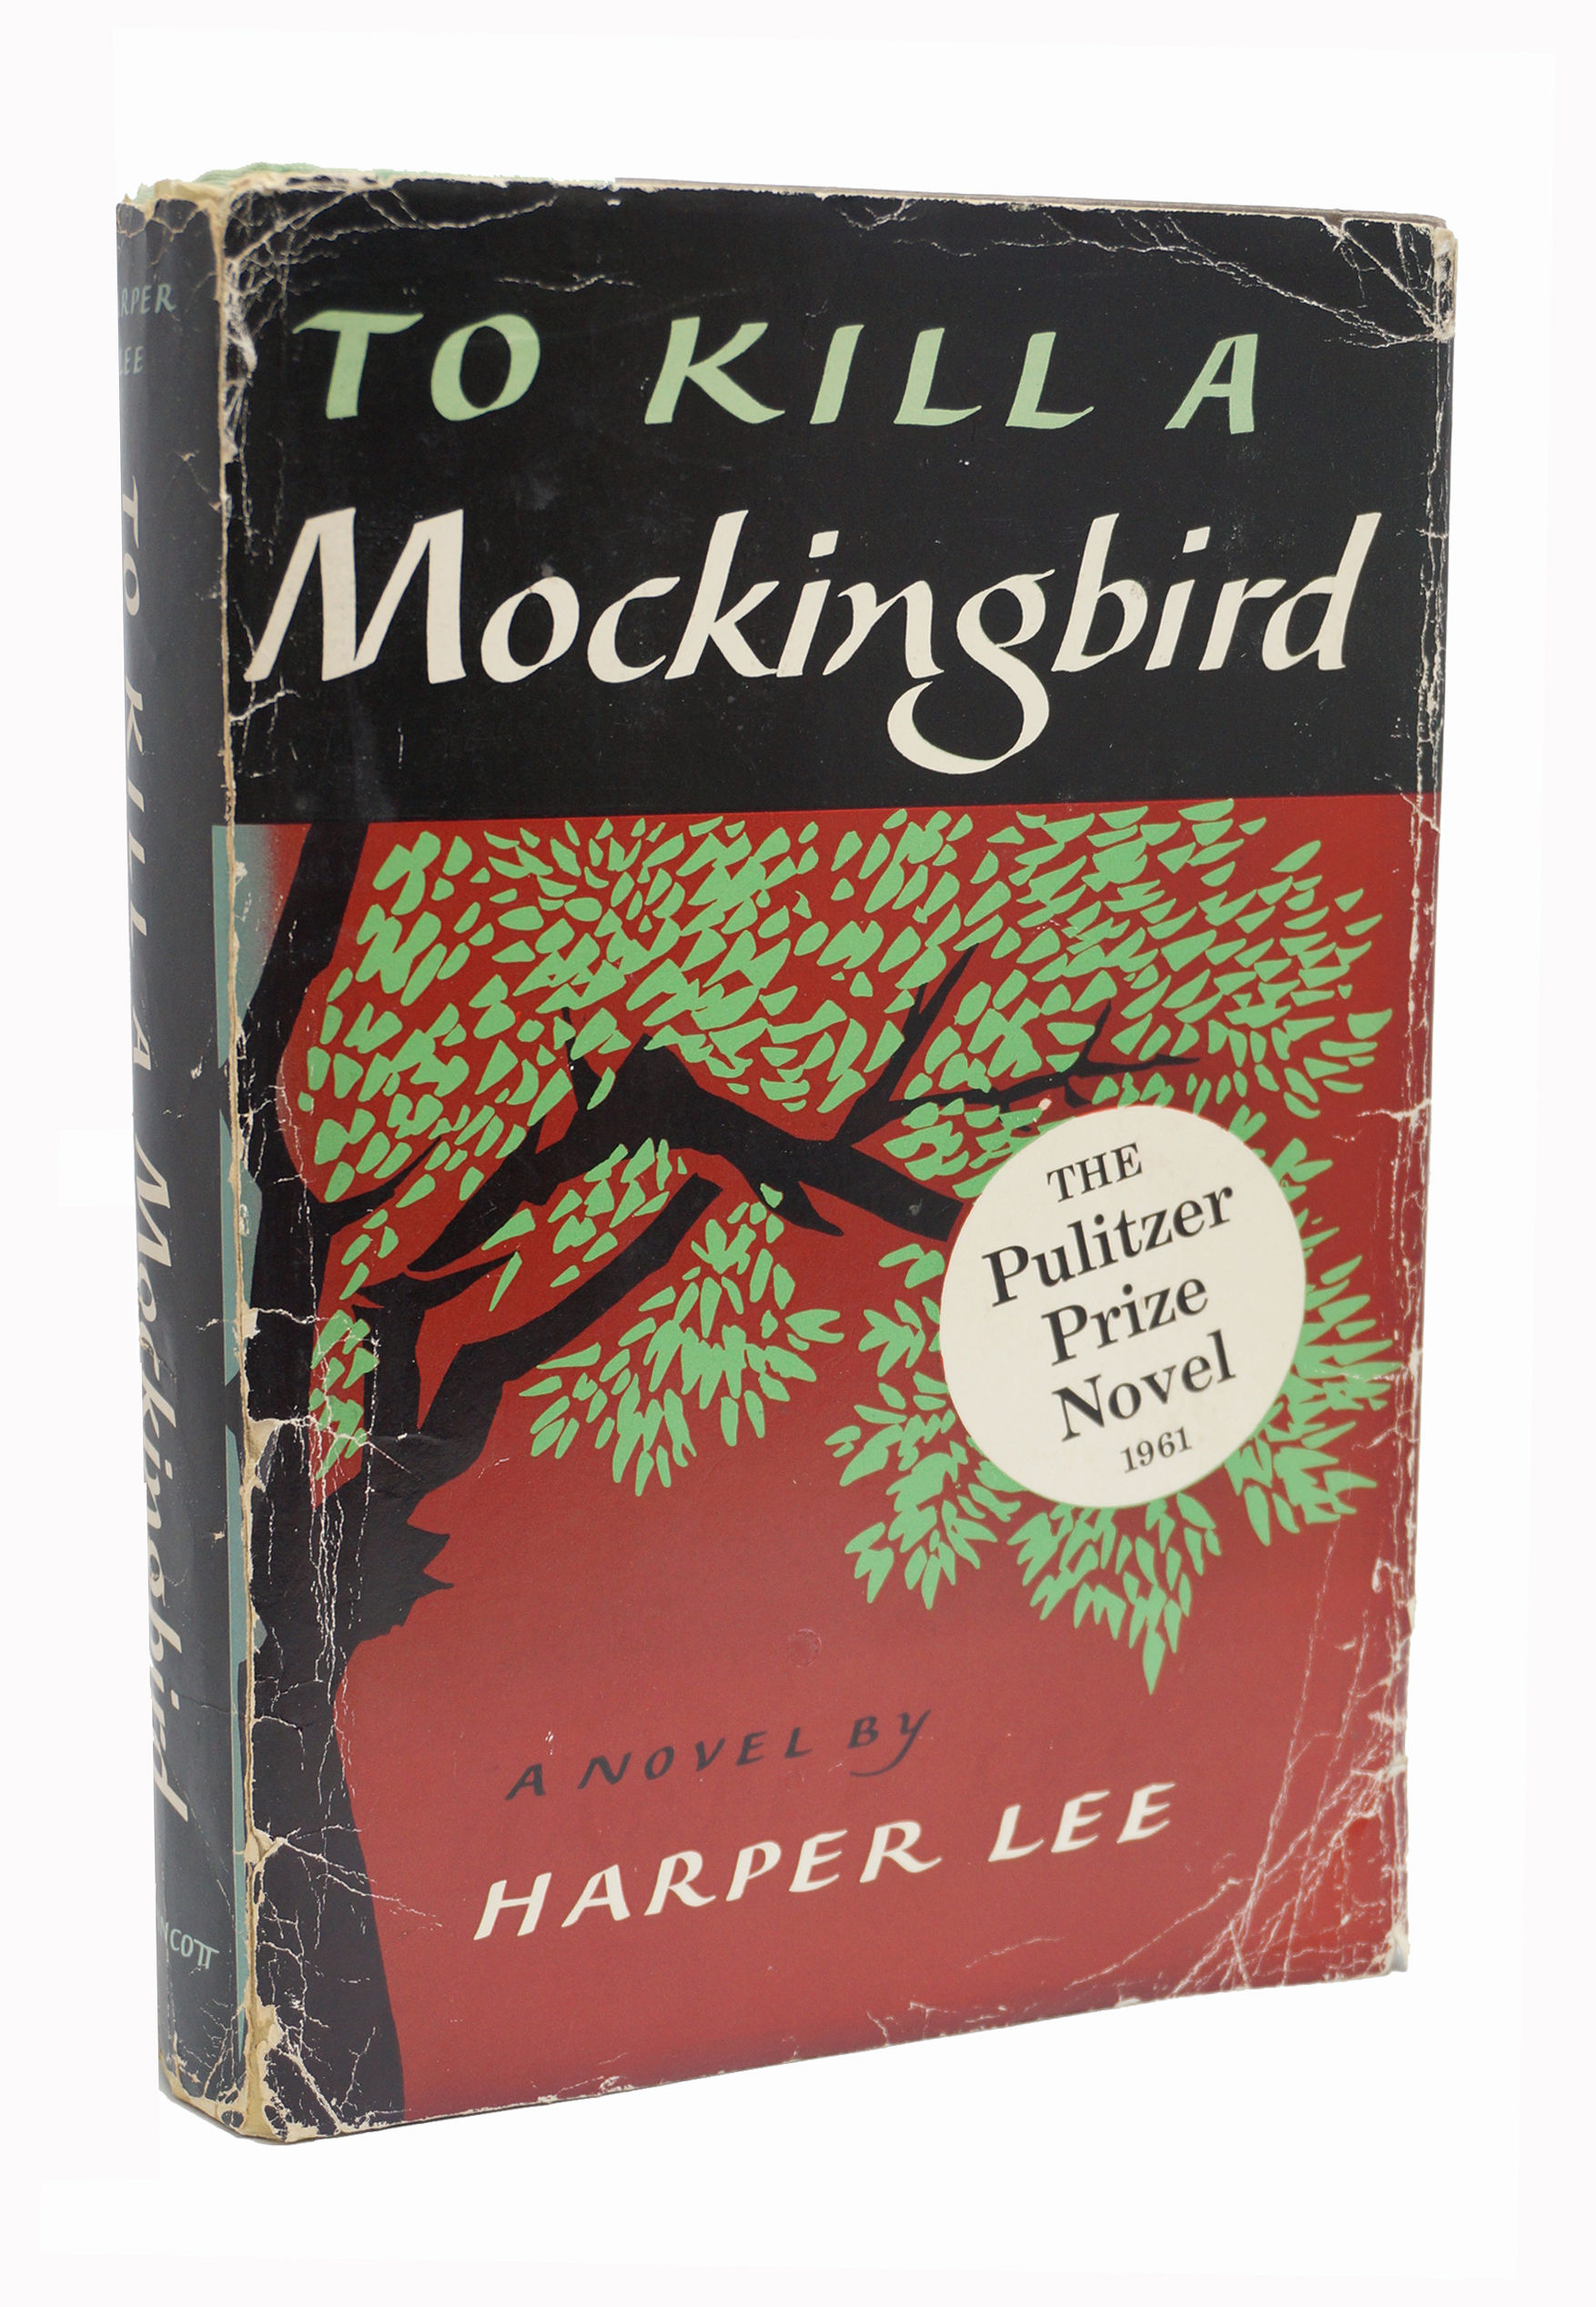 the social relevance of to kill a mockingbird a novel by harper lee Books and booze: 'to kill a mockingbird' by harper lee  roles thrust upon her and the racial and social inequalities that her father atticus is  the meaning is revealed through themes and lines in the book, as lee compares.